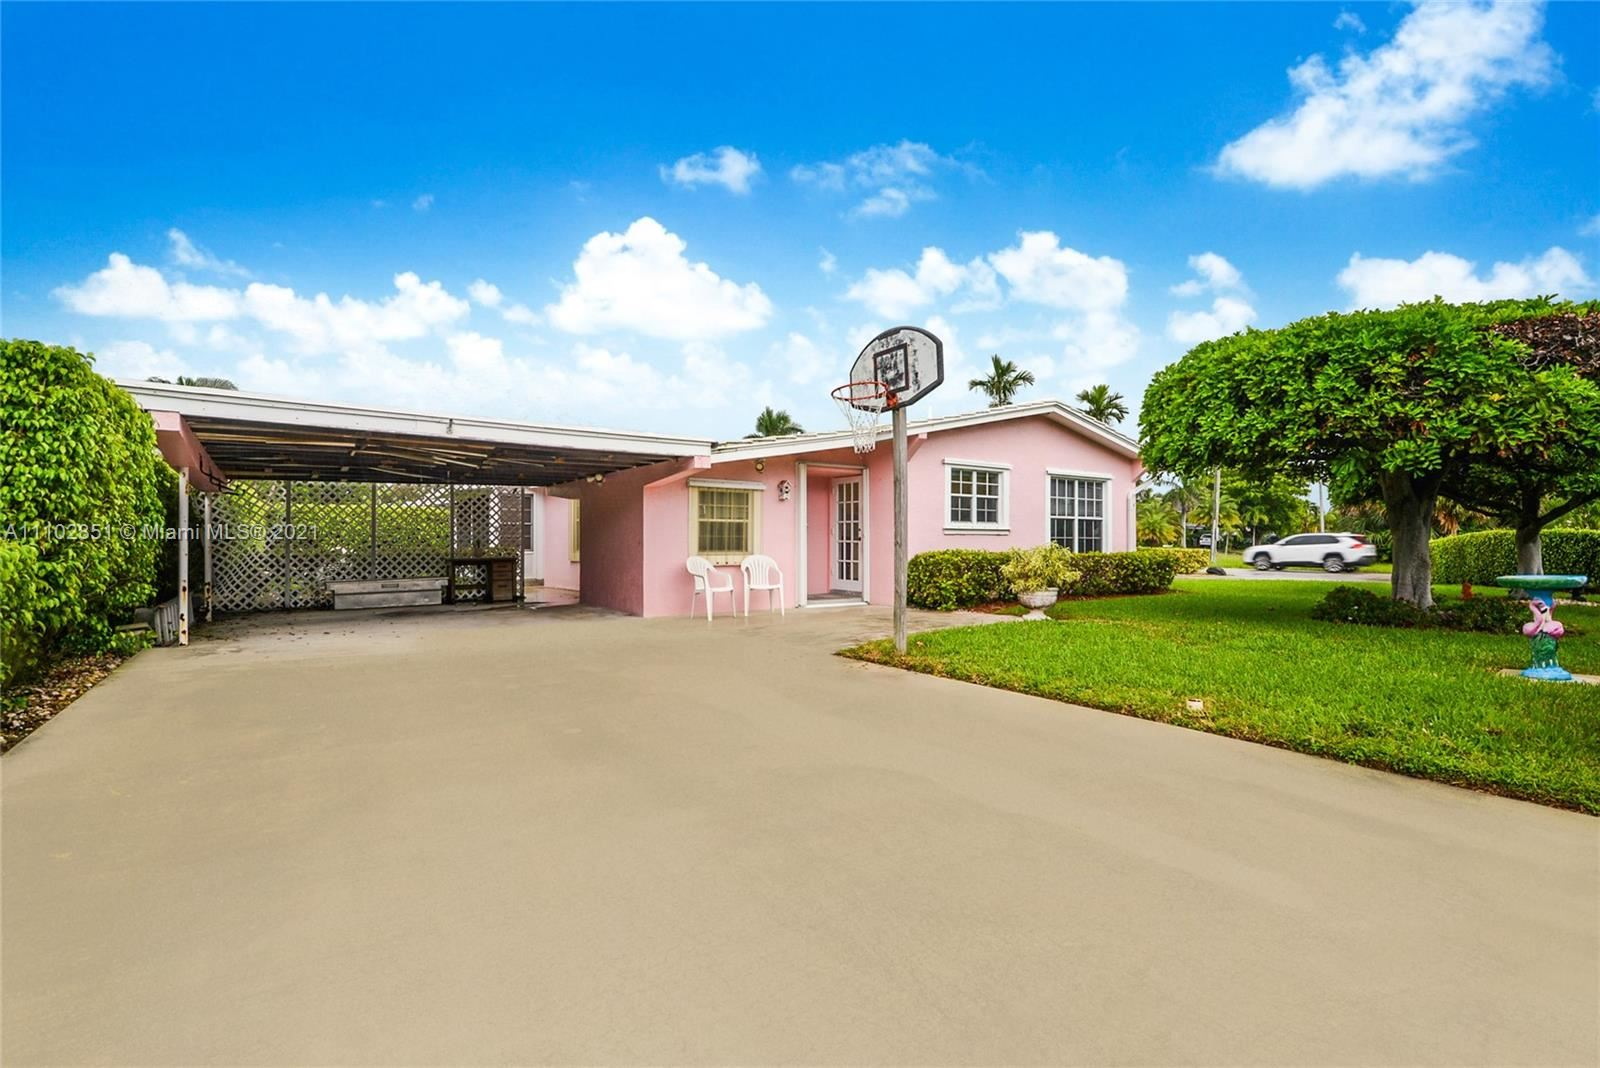 Photo of 244 Hibiscus Ave, Lauderdale By The Sea, FL 33308 (MLS # A11102851)